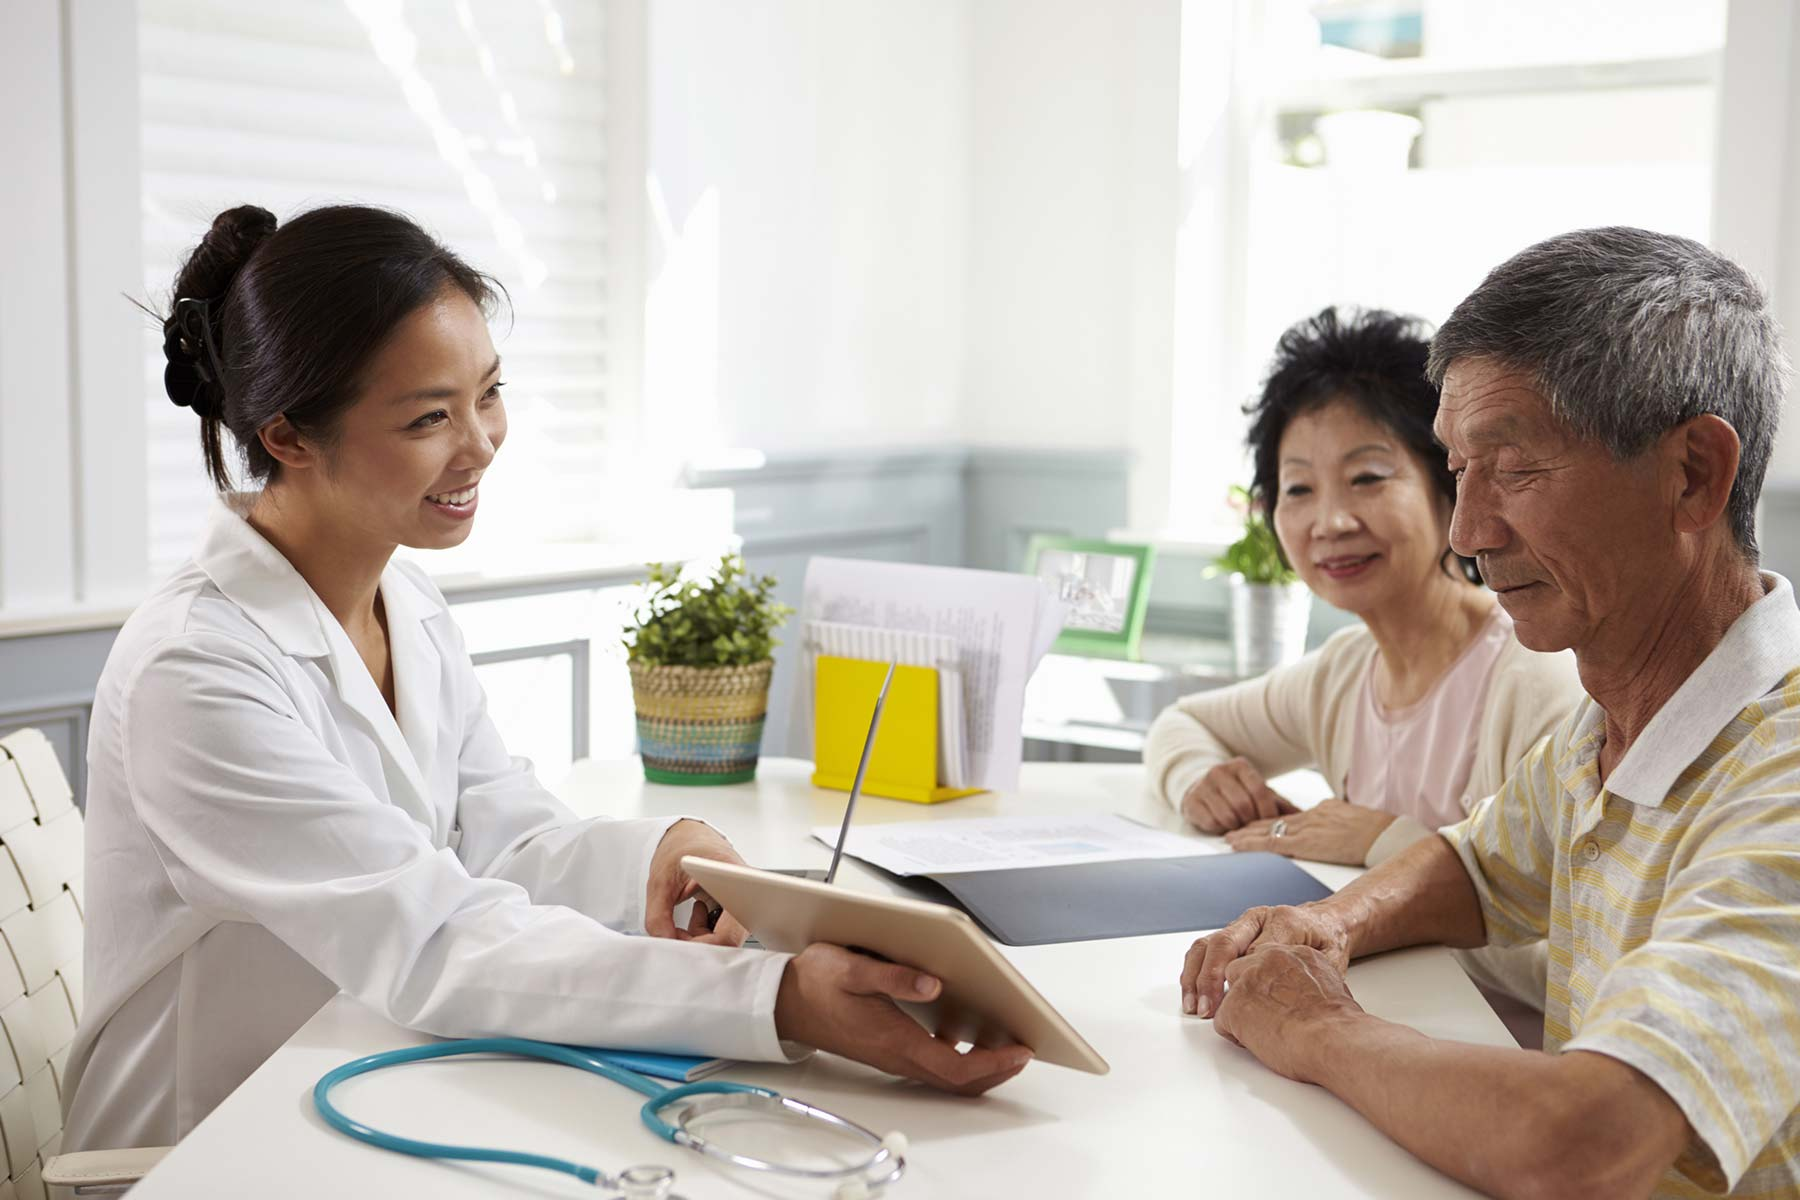 doctor talking to patient family 1800 x 1200